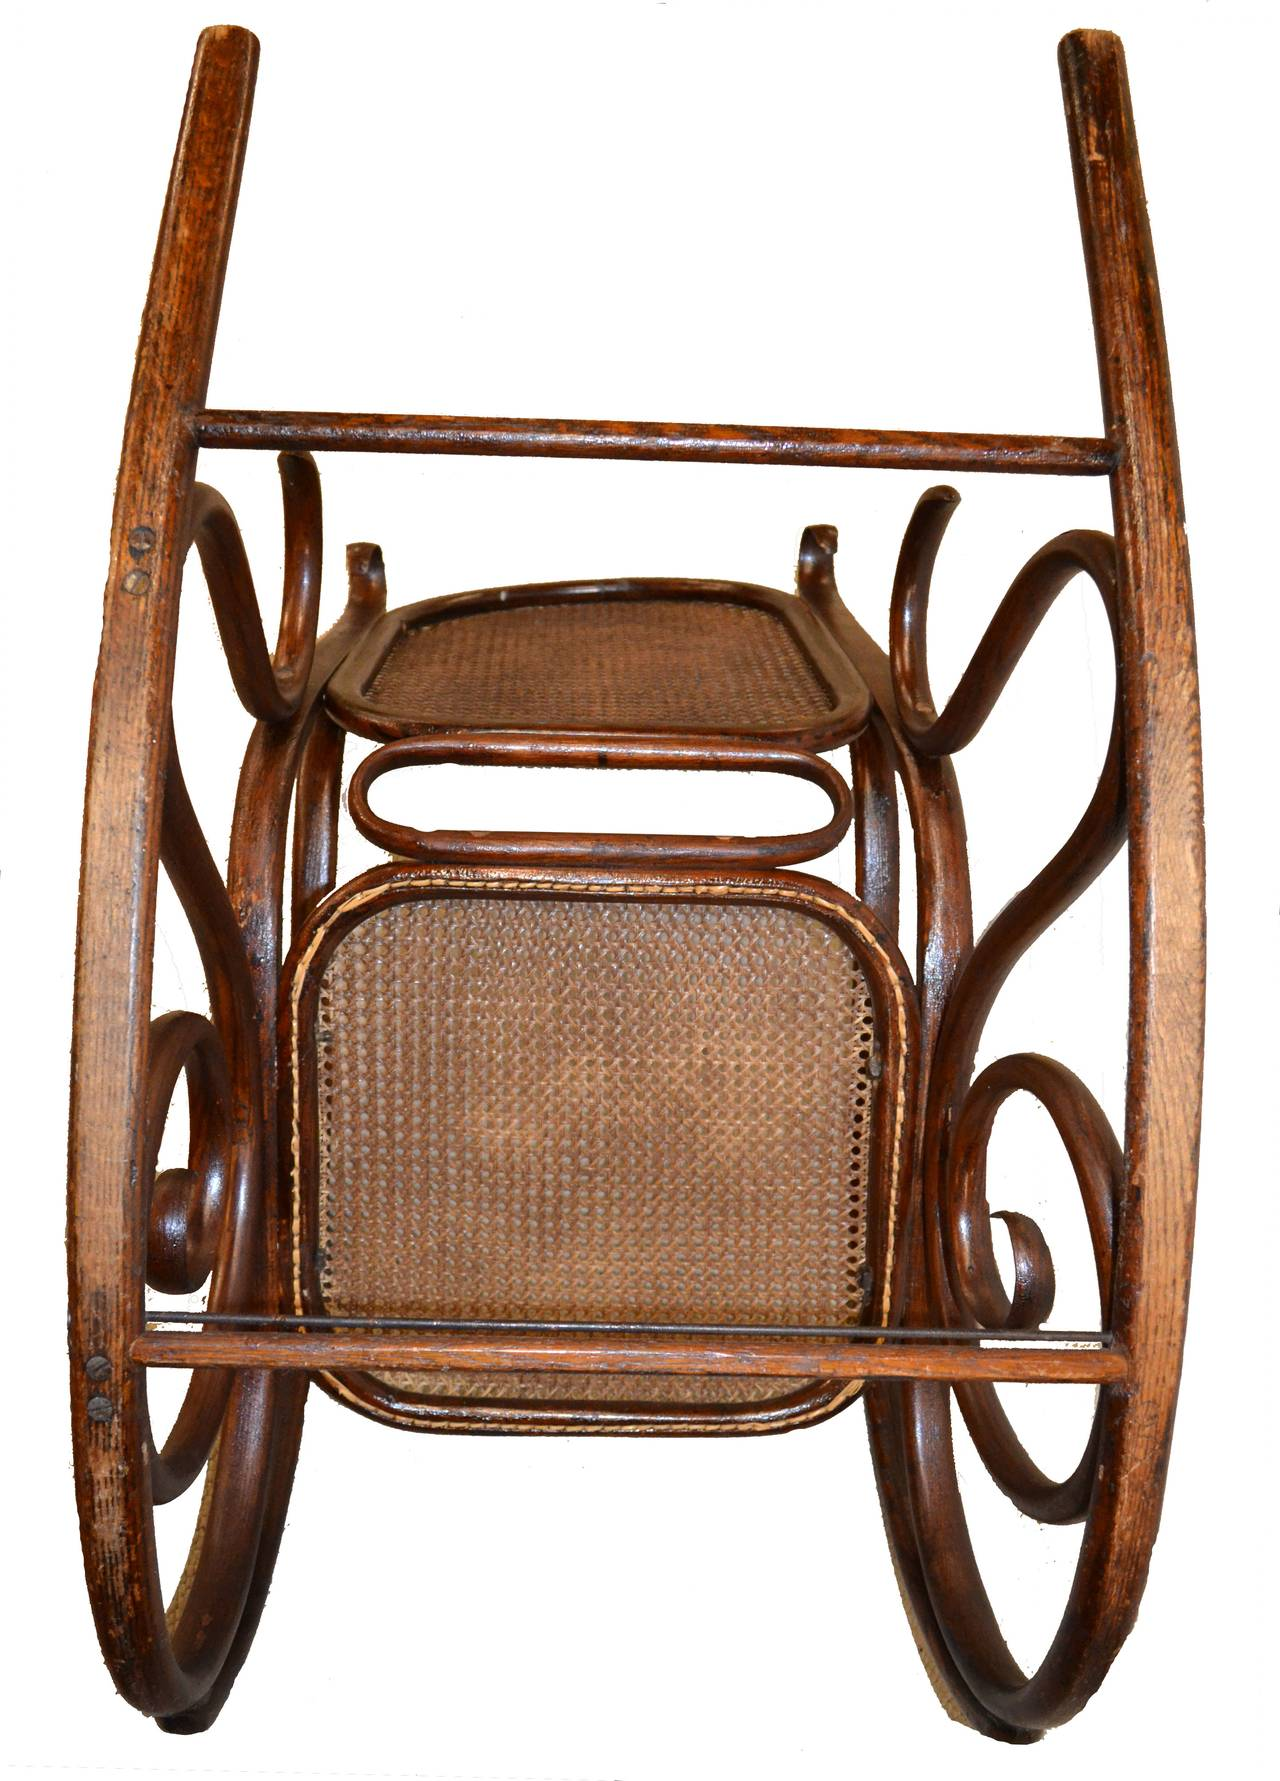 Bentwood rocking chair value - 19th Century Thonet Bentwood Rocker Chair 3